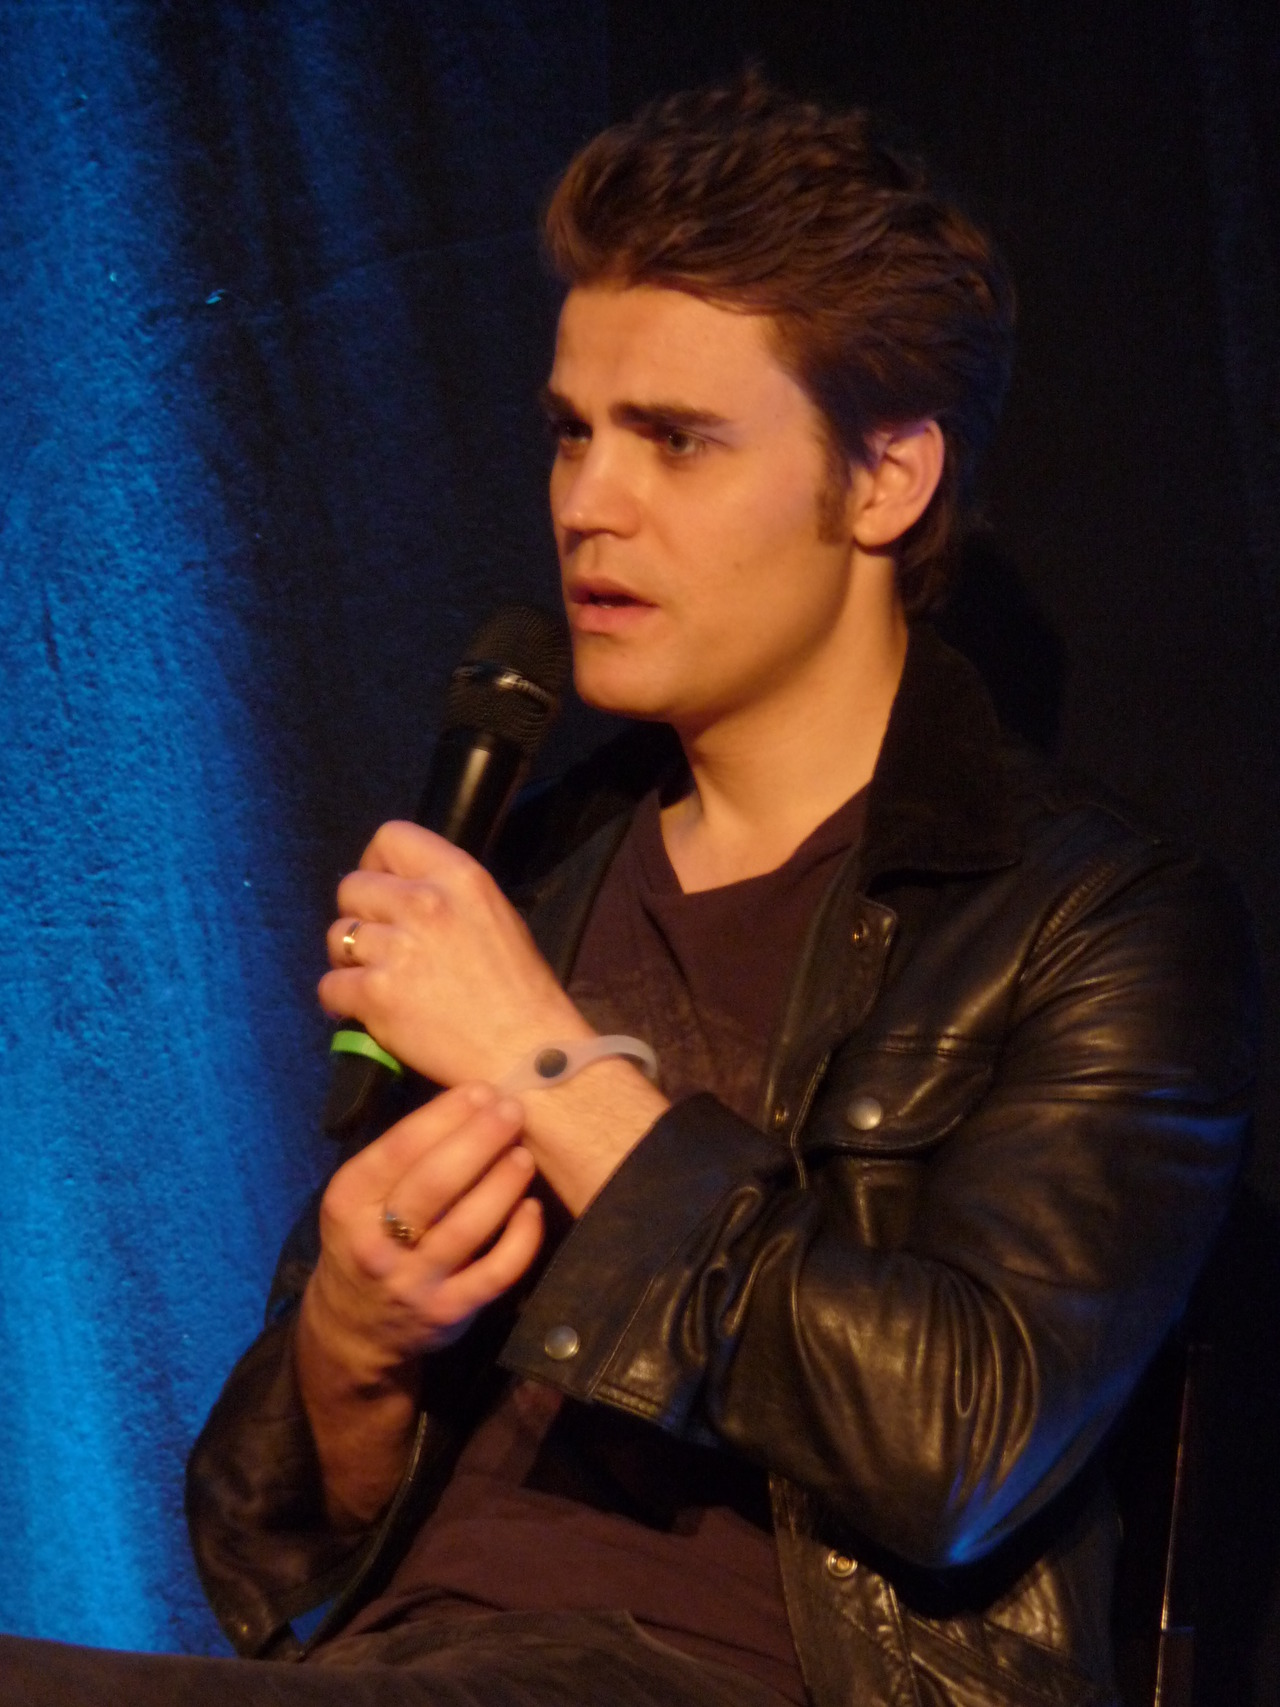 Paul at Bloody Night Con Eropah - Brussels (May 2013)